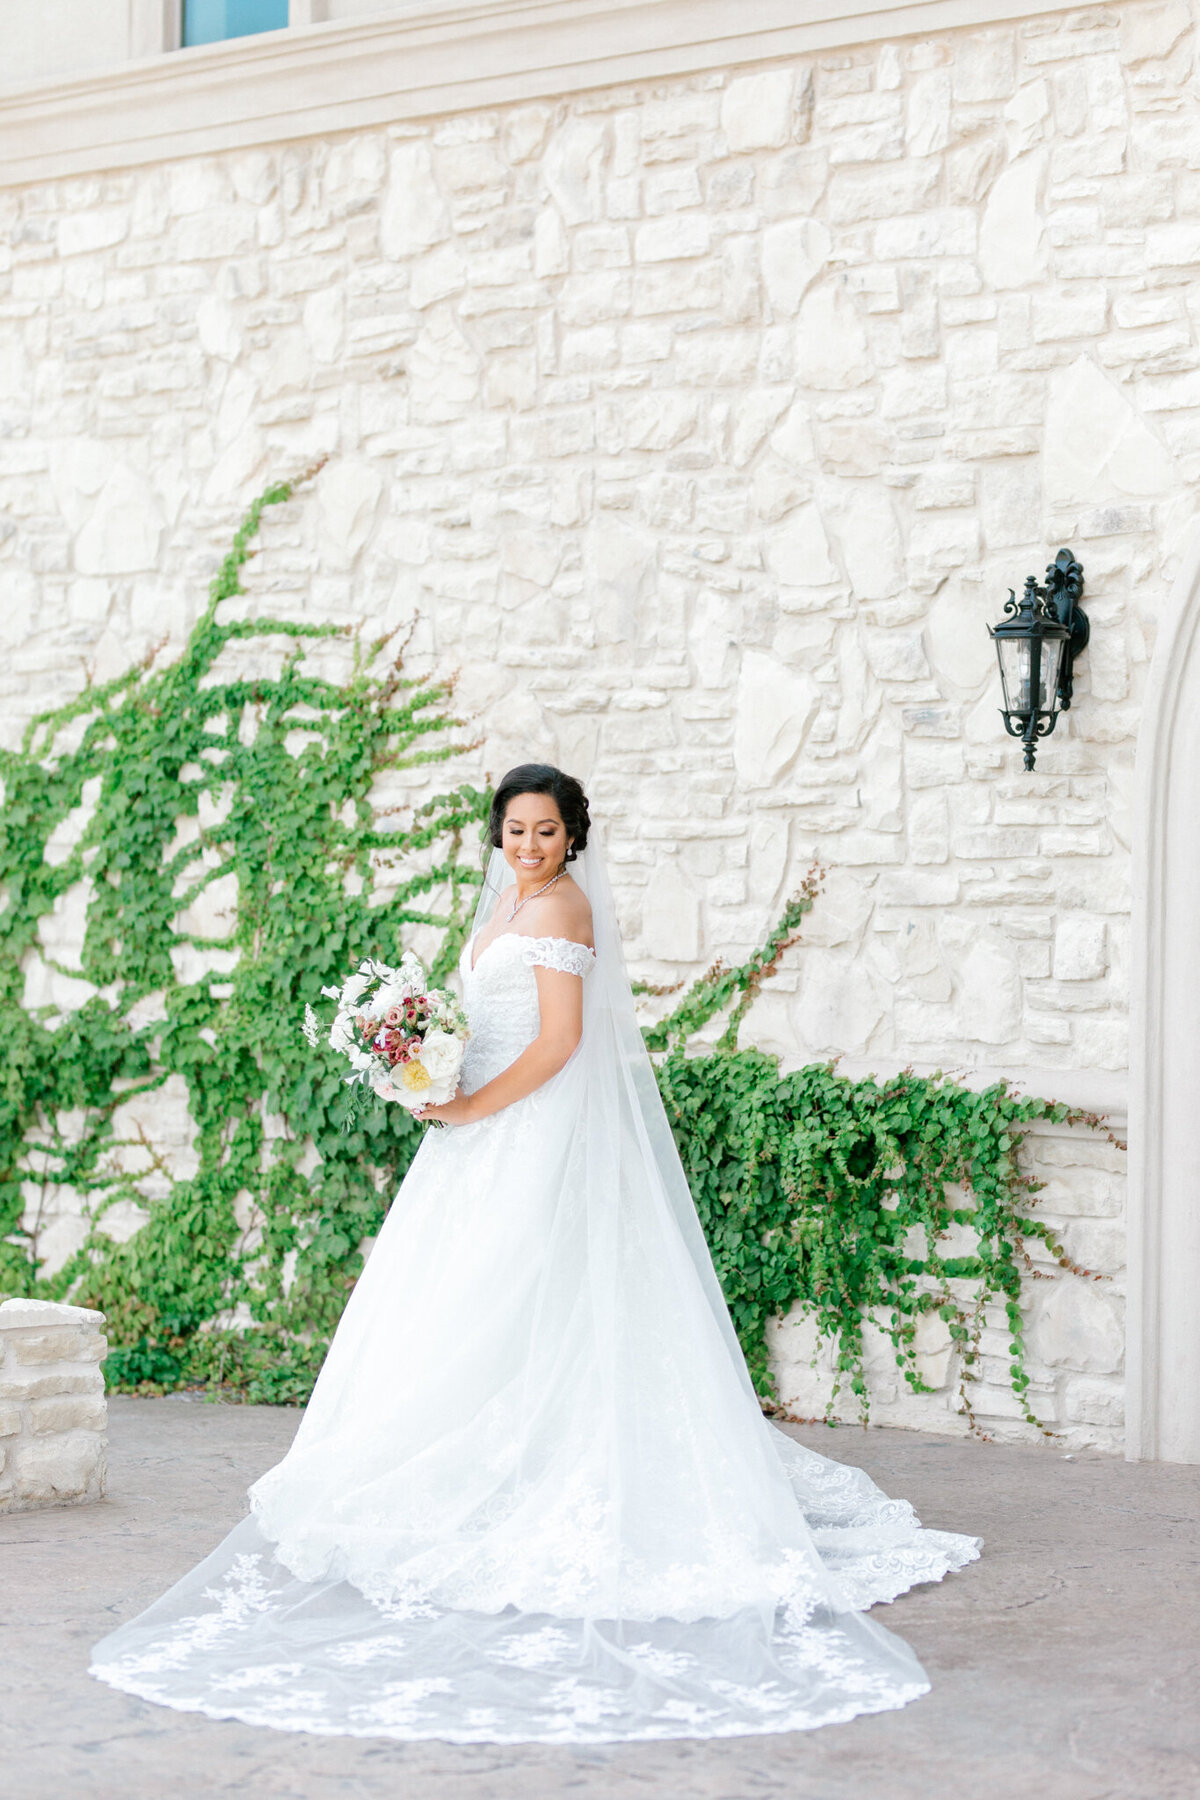 Jasmine & Josh Wedding at Knotting Hill Place | Dallas DFW Wedding Photographer | Sami Kathryn Photography-22